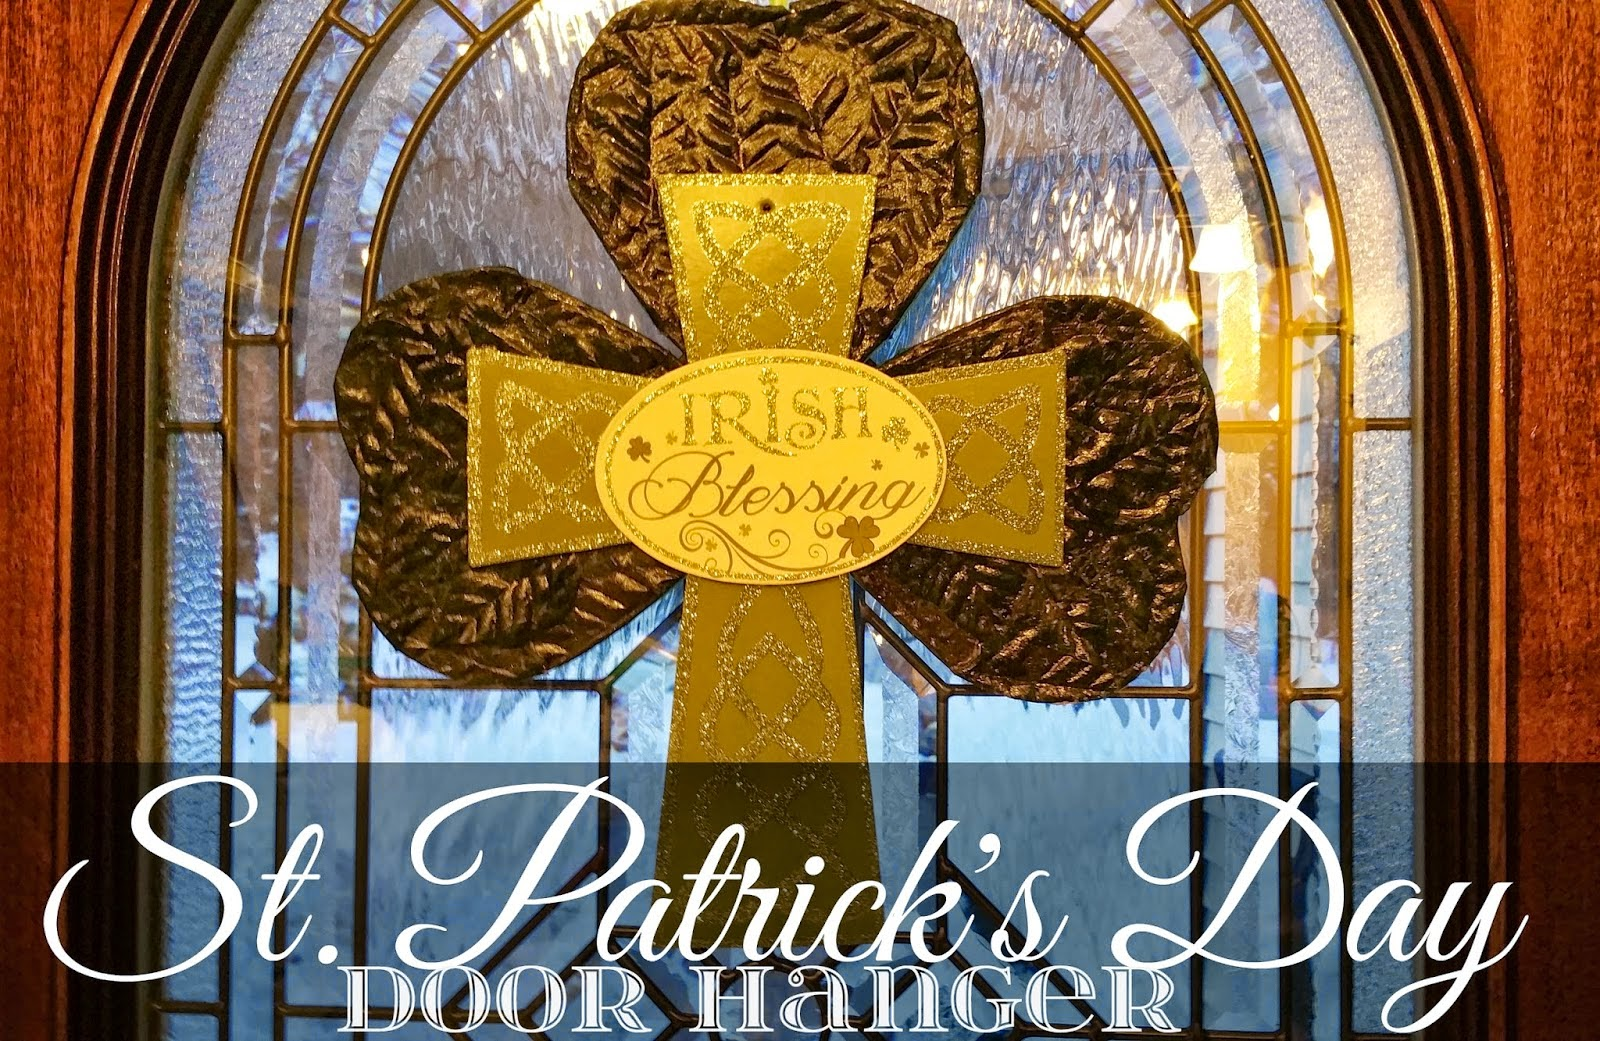 st patricks day door hanger wall plaque